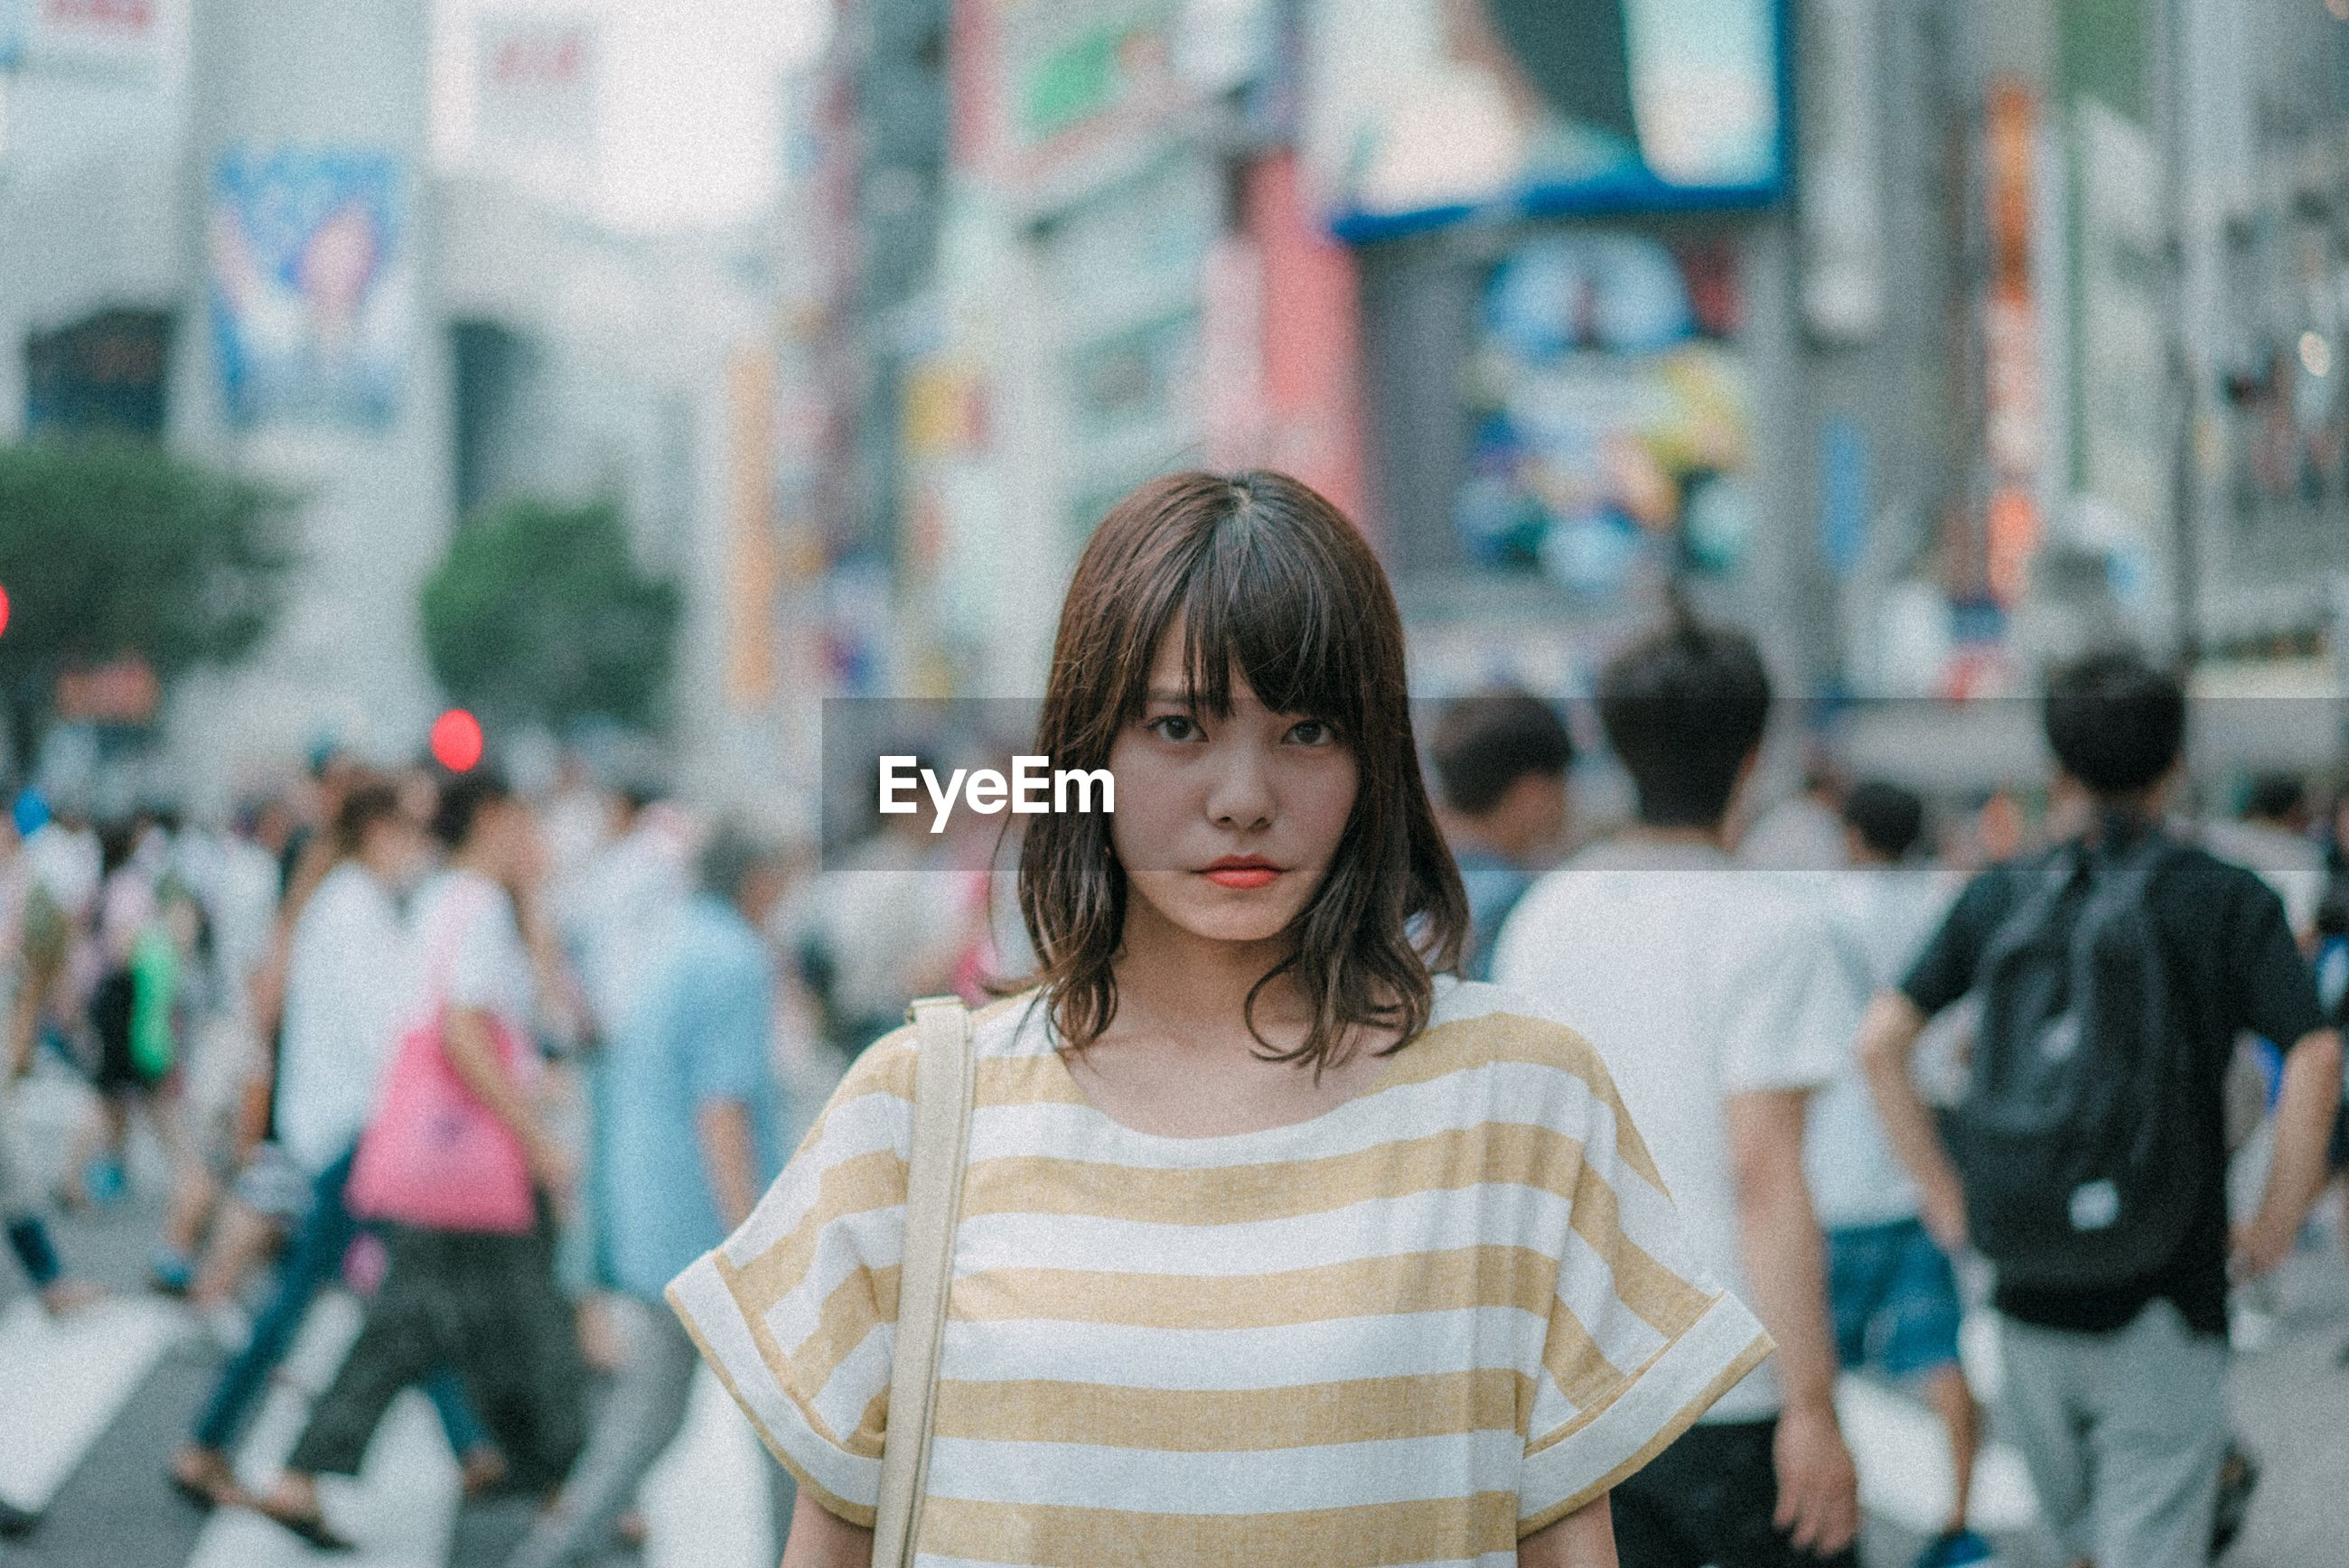 focus on foreground, real people, city, casual clothing, lifestyles, incidental people, standing, portrait, one person, front view, leisure activity, women, looking at camera, street, young adult, waist up, young women, architecture, hairstyle, beautiful woman